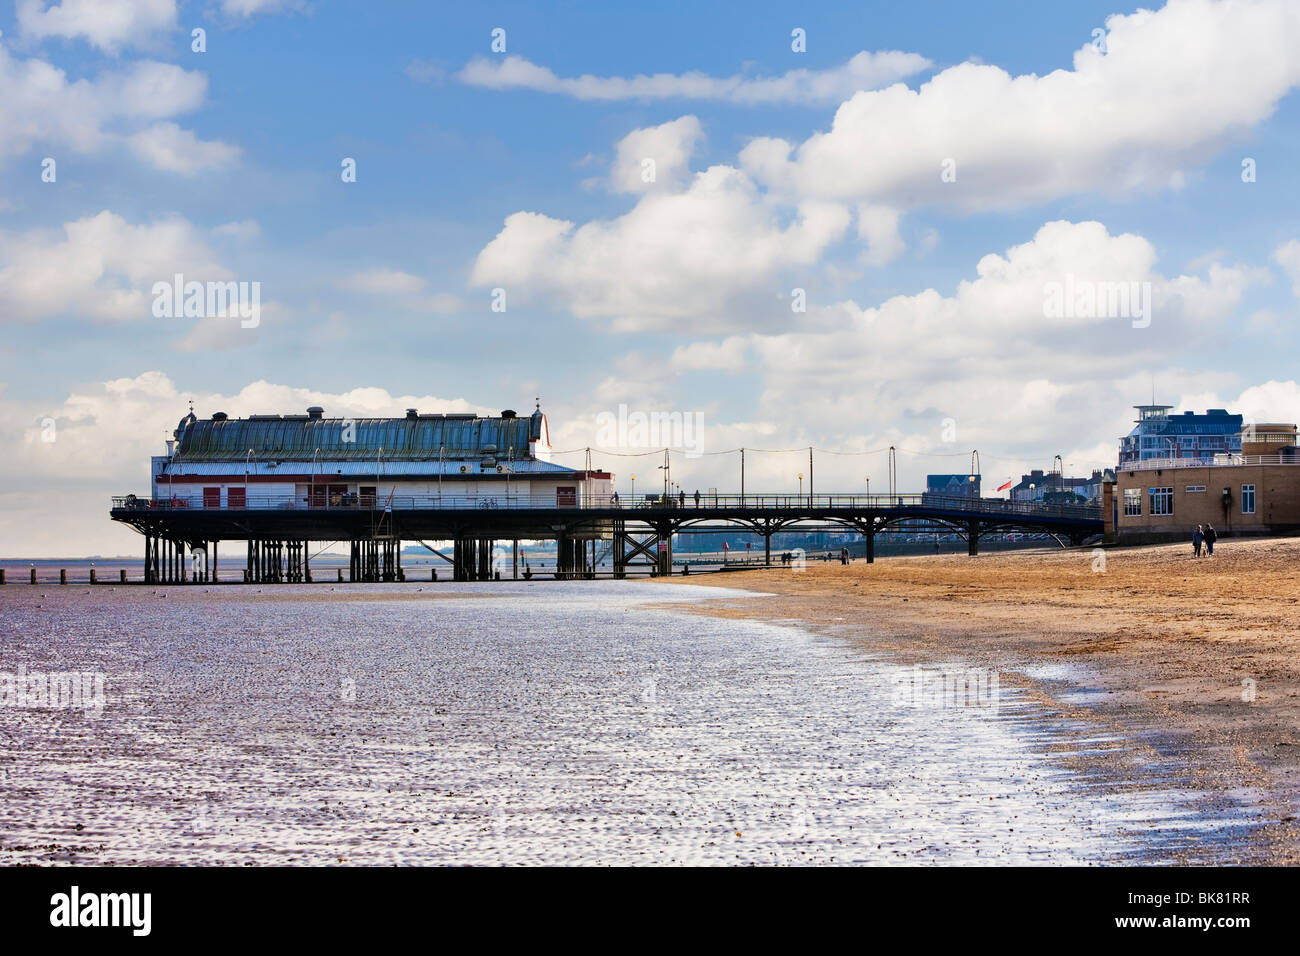 Traditional Pier at Cleethorpes, UK - Stock Image